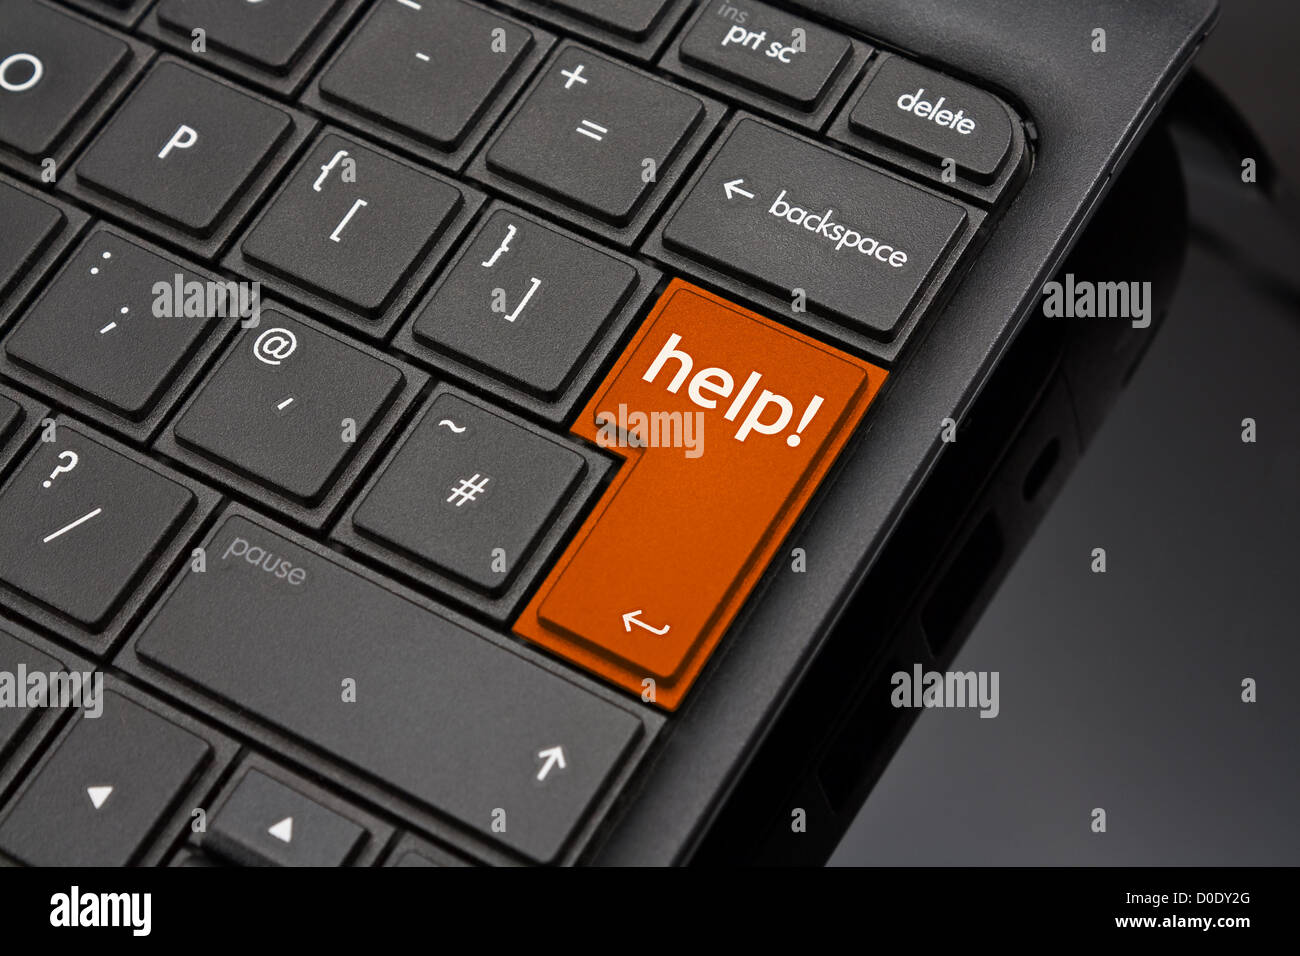 Help Return Key symbolizing a user requesting support to help repair a crashed or damaged computer - Stock Image